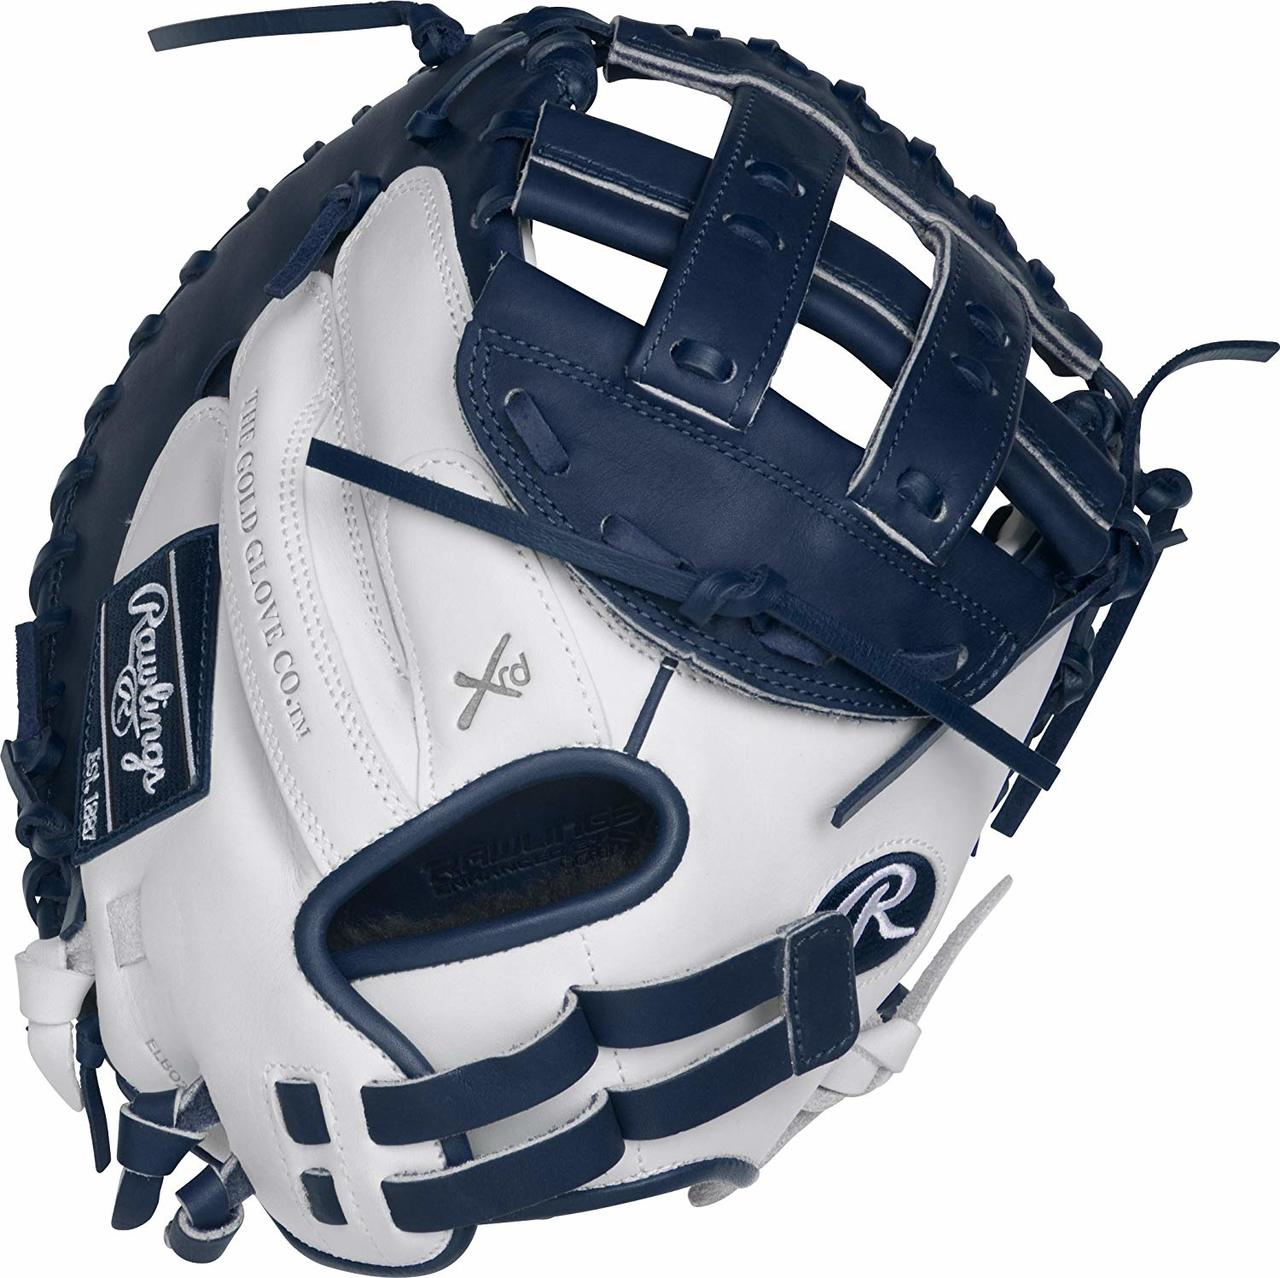 rawlings-liberty-advanced-33-rlacm33fpwn-fastpitch-softball-catchers-mitt-right-hand-throw RLACM33FPWN-RightHandThrow Rawlings 083321439735 Limited Edition Color Series - White/Navy Colorway 33 Inch Womens Catchers